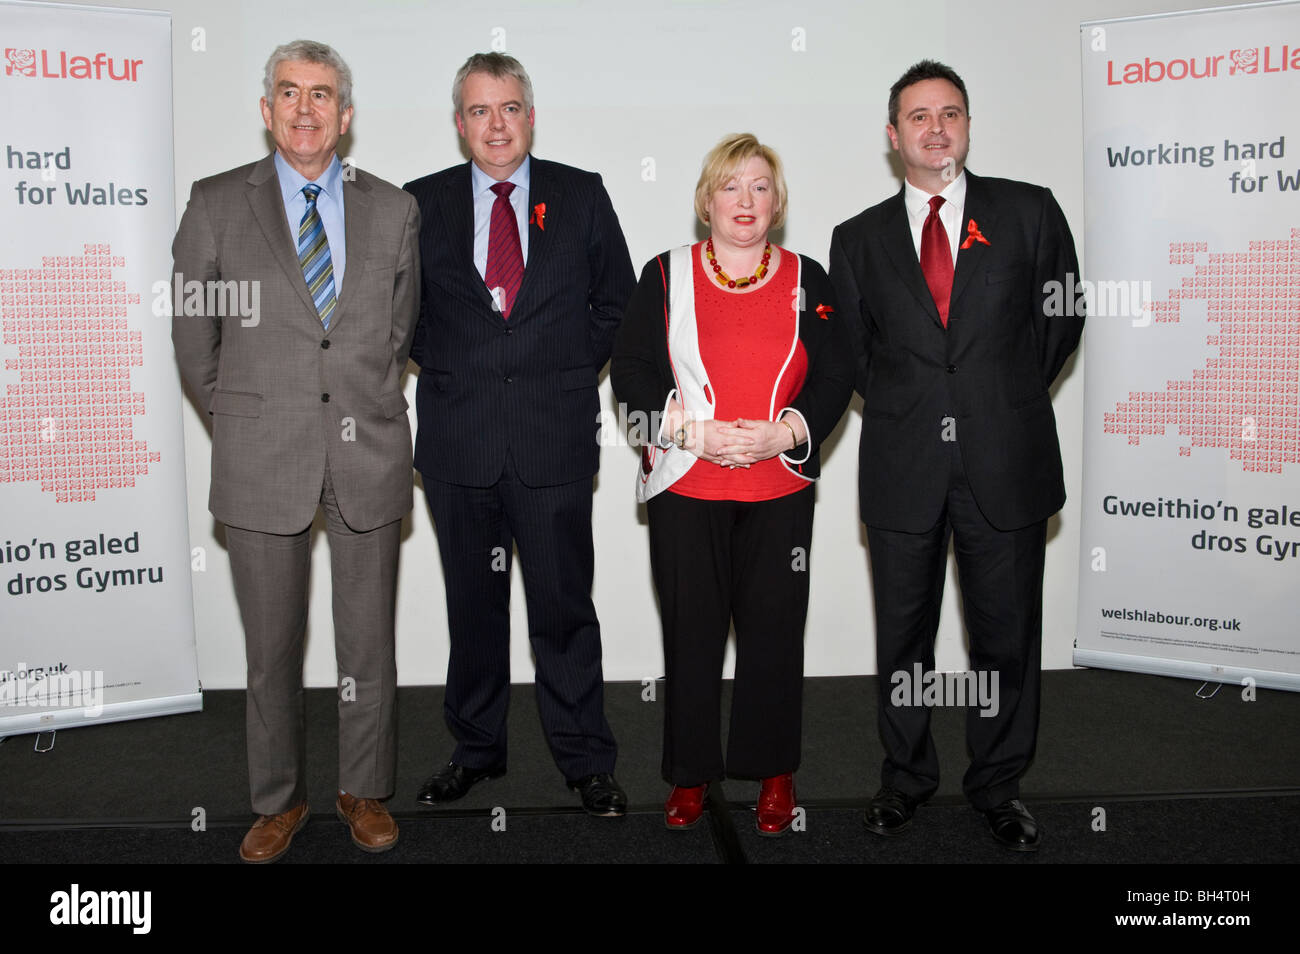 Welsh Labour Party Assembly Members l-r Rhodri Morgan, Carwyn Jones, Edwina Hart and Huw Lewis at a Welsh Labour - Stock Image